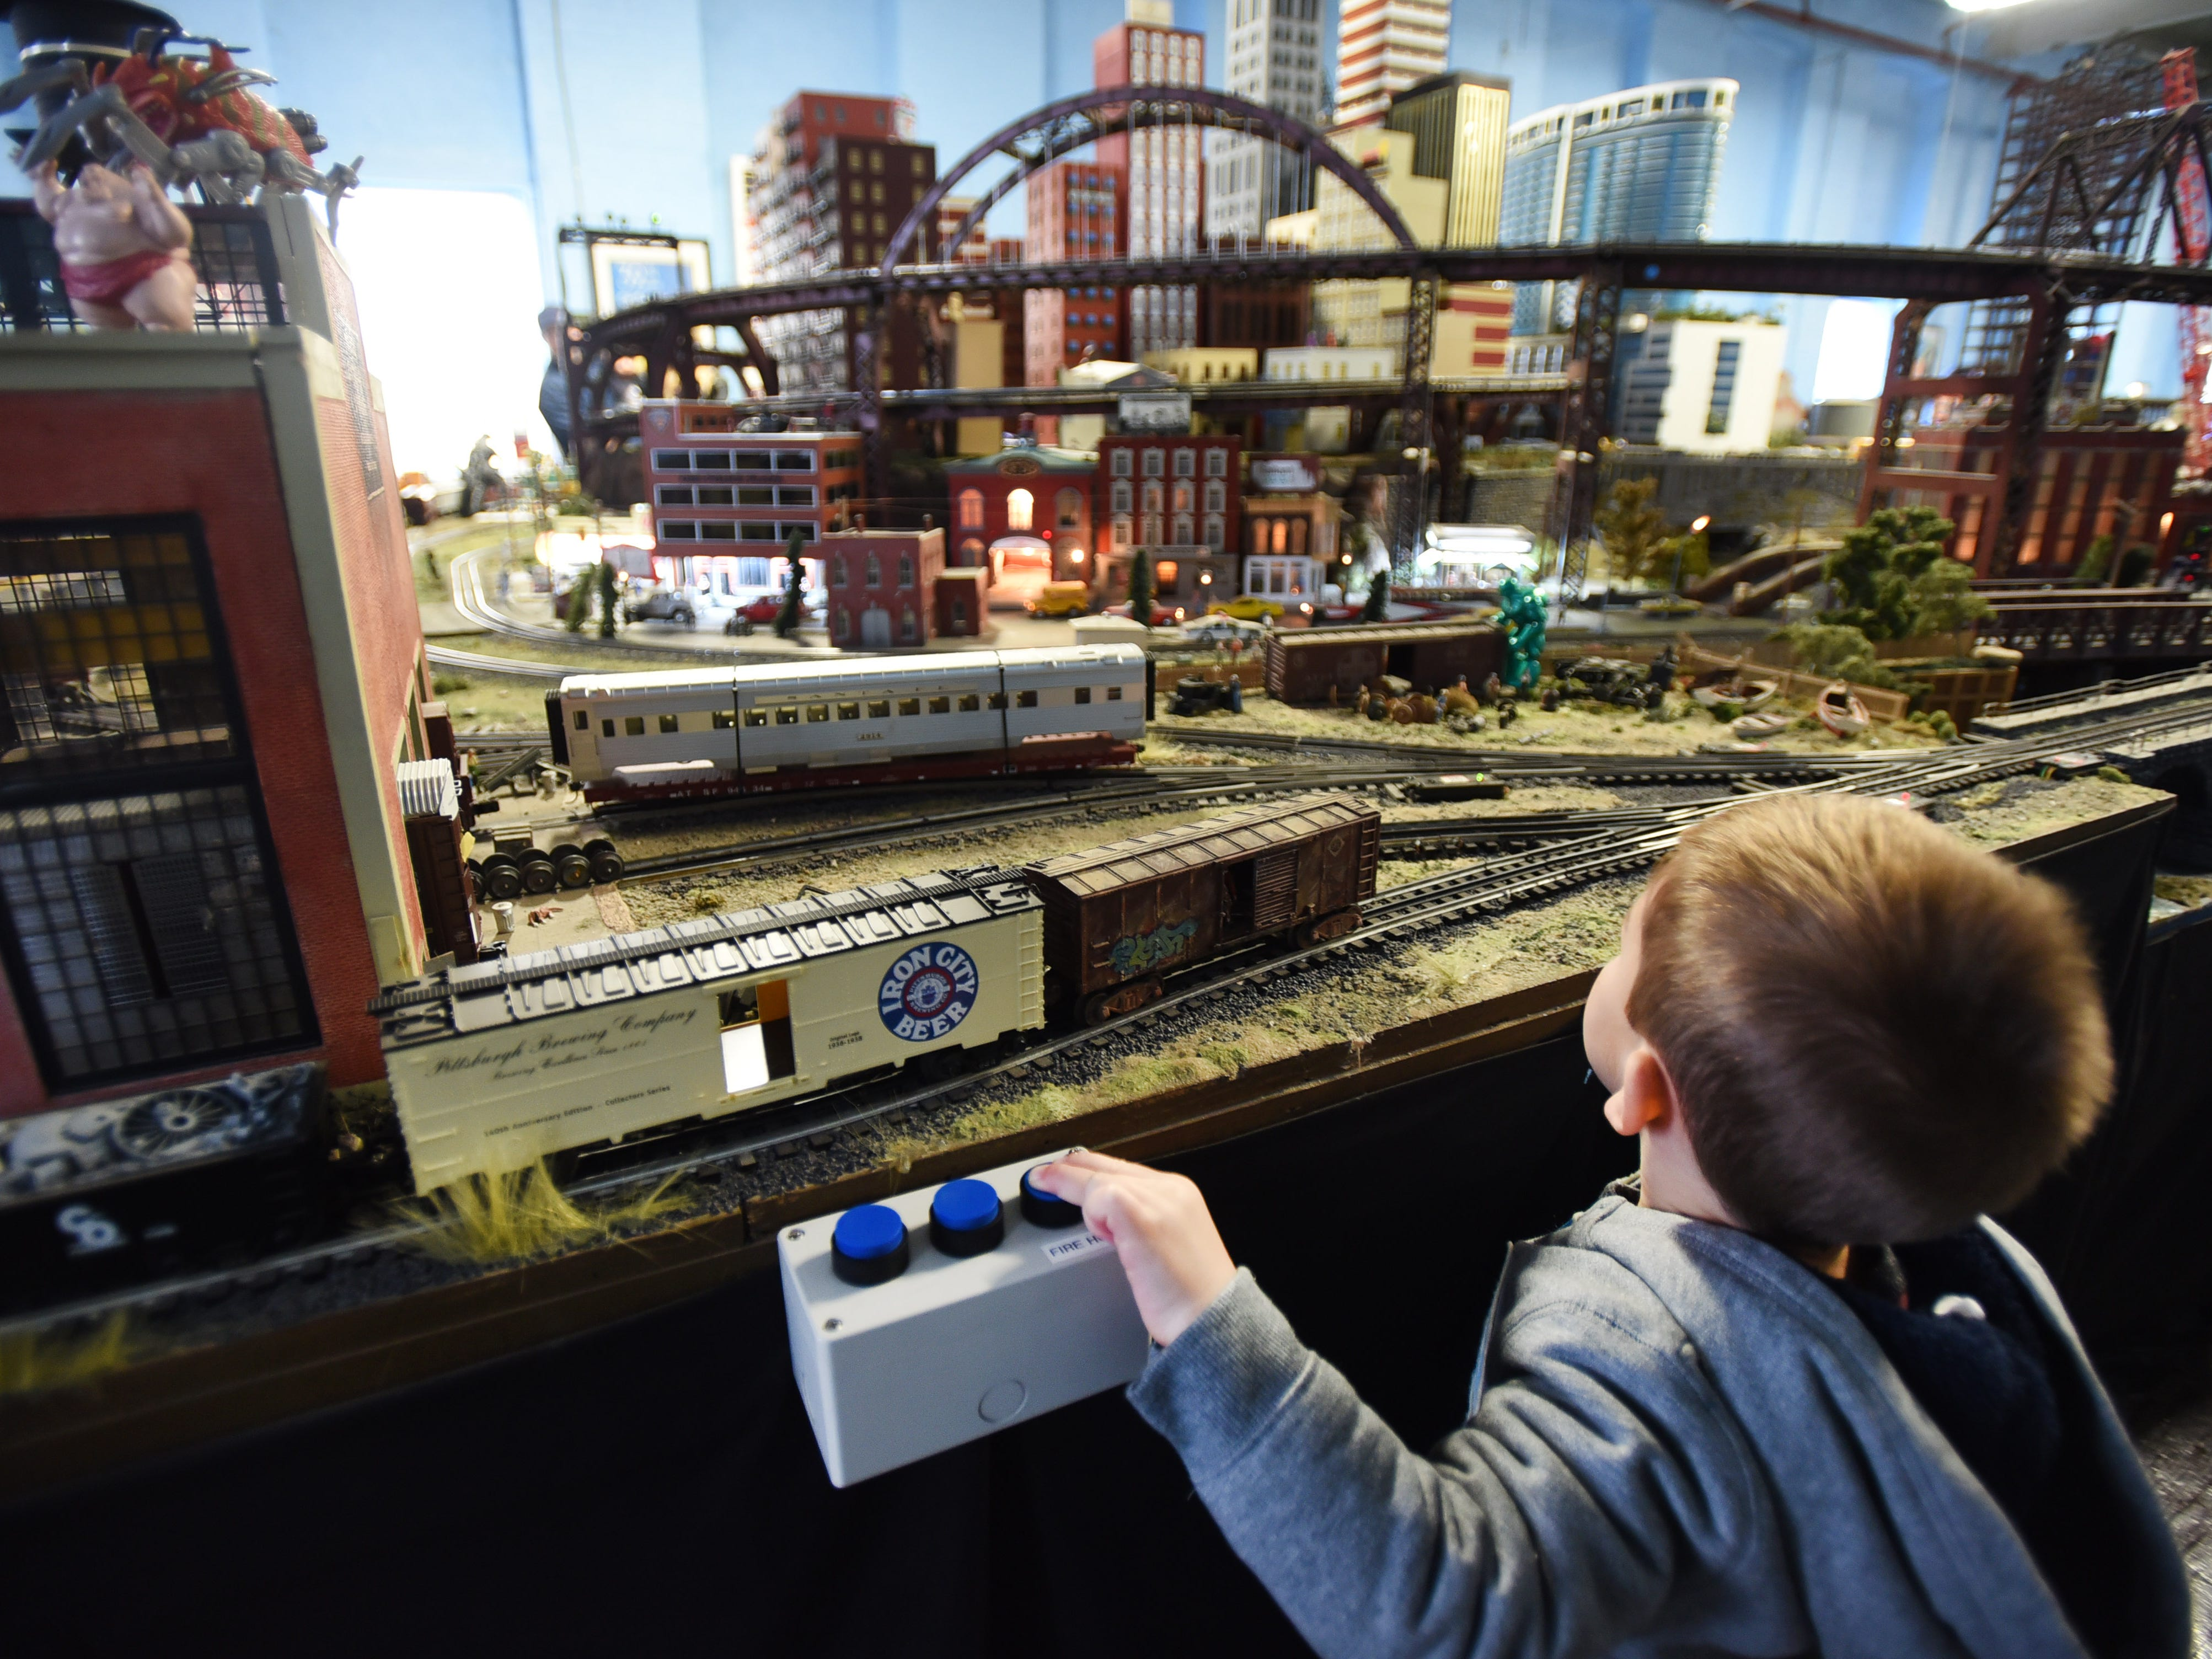 Three-year-old Alex George of Rockaway hits the power button at a model train show sponsored by the NJ Hi-Railers in Paterson on Oct. 28.